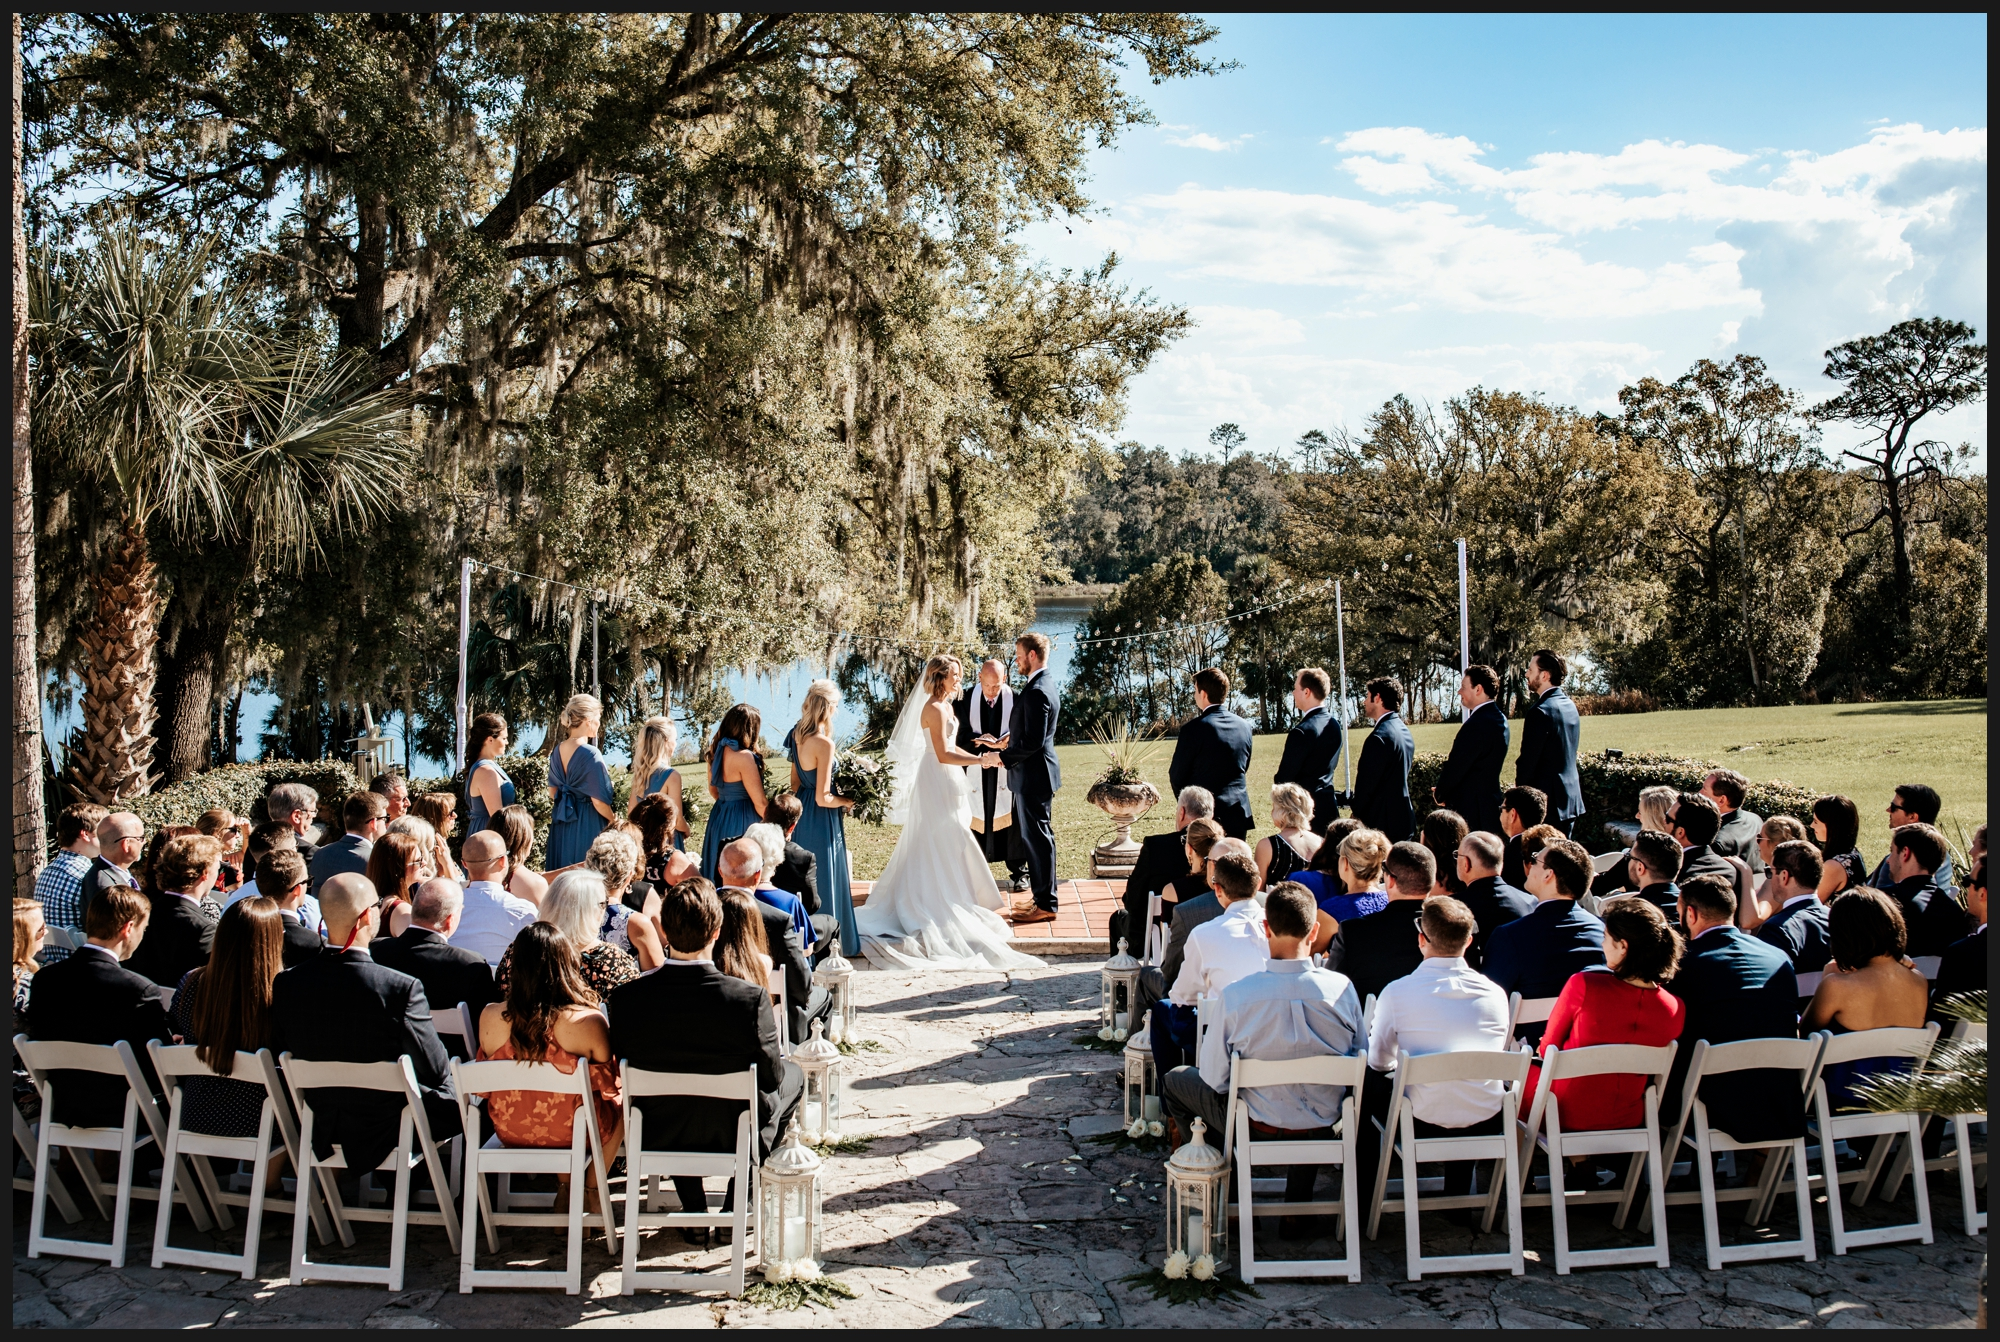 Orlando-Wedding-Photographer-destination-wedding-photographer-florida-wedding-photographer-bohemian-wedding-photographer_1515.jpg